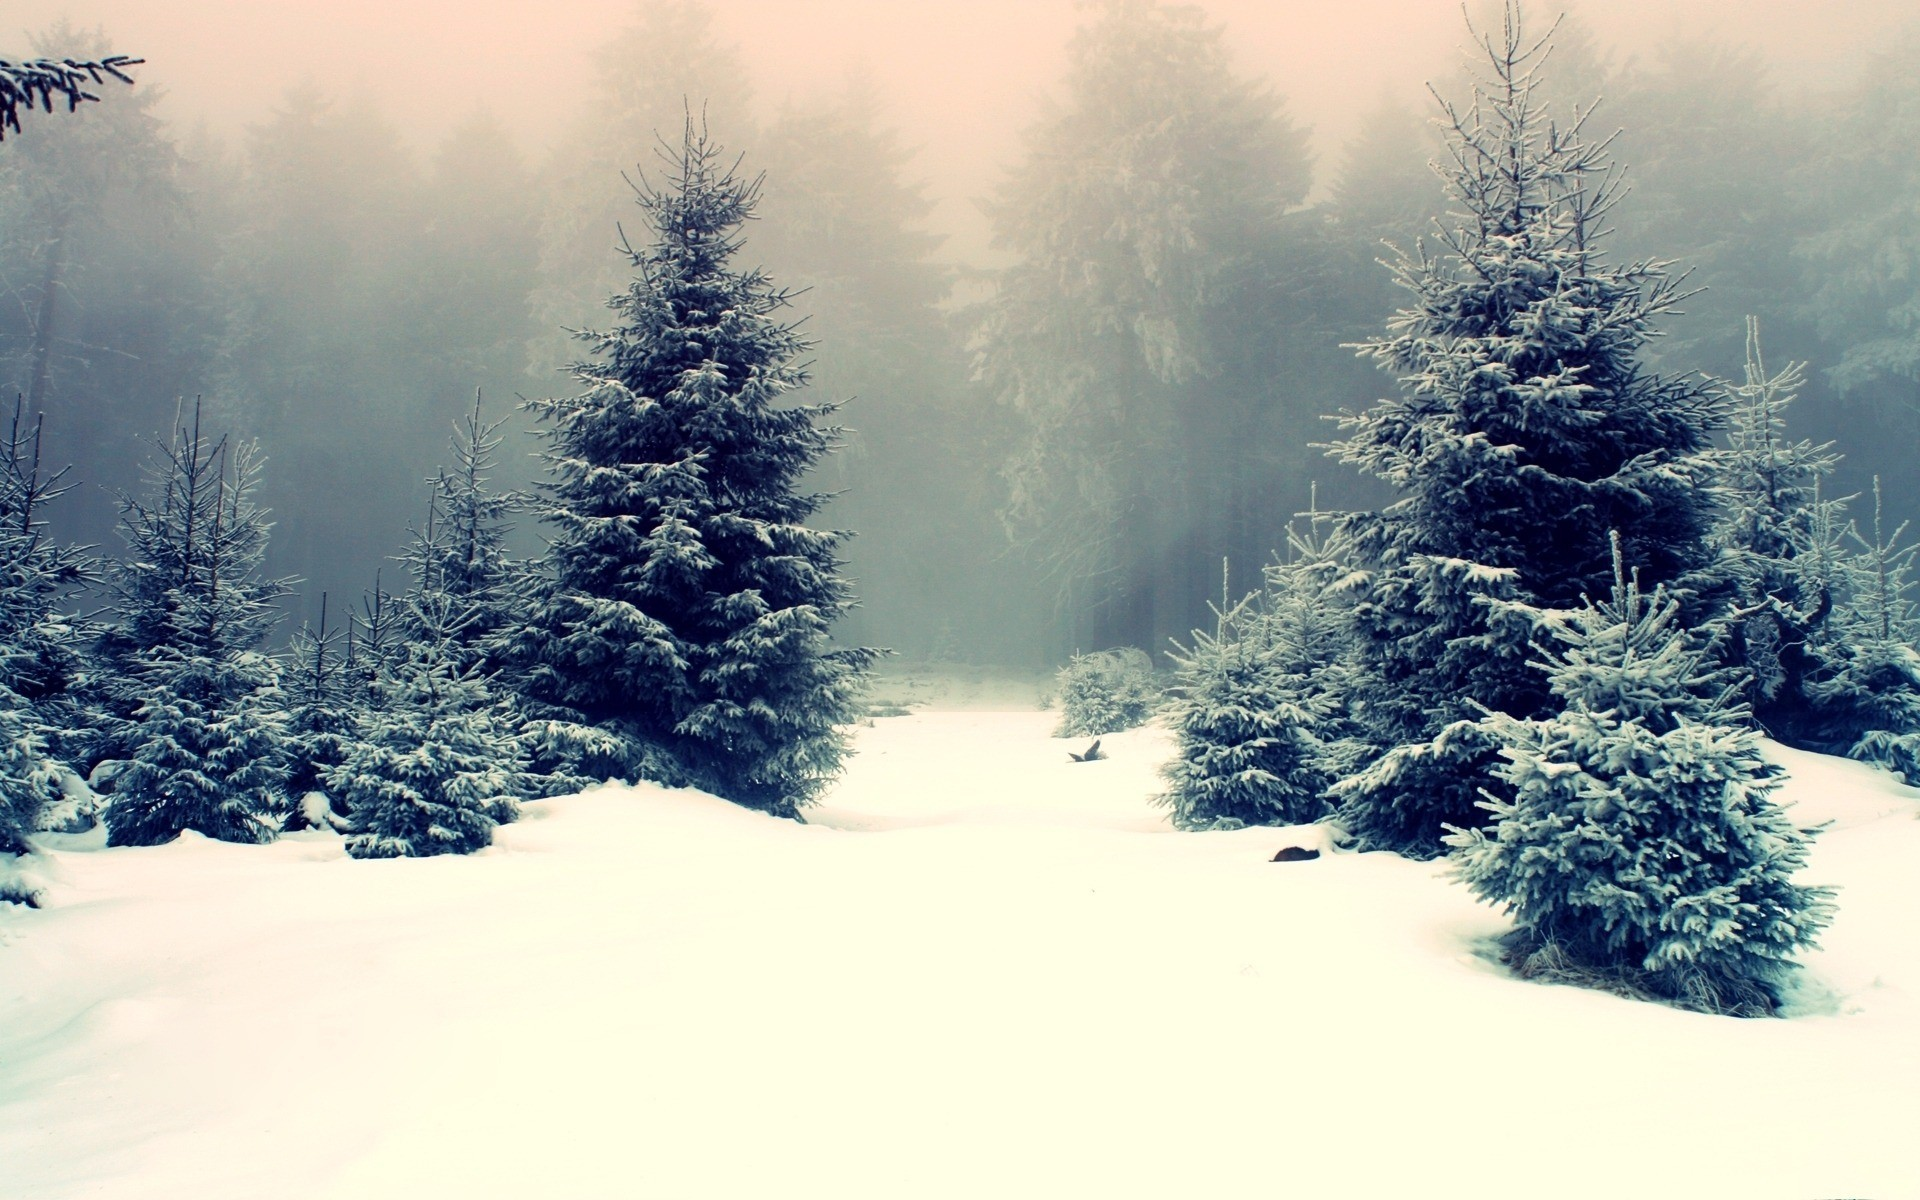 Group Of Hd Snow Forest Wallpaper